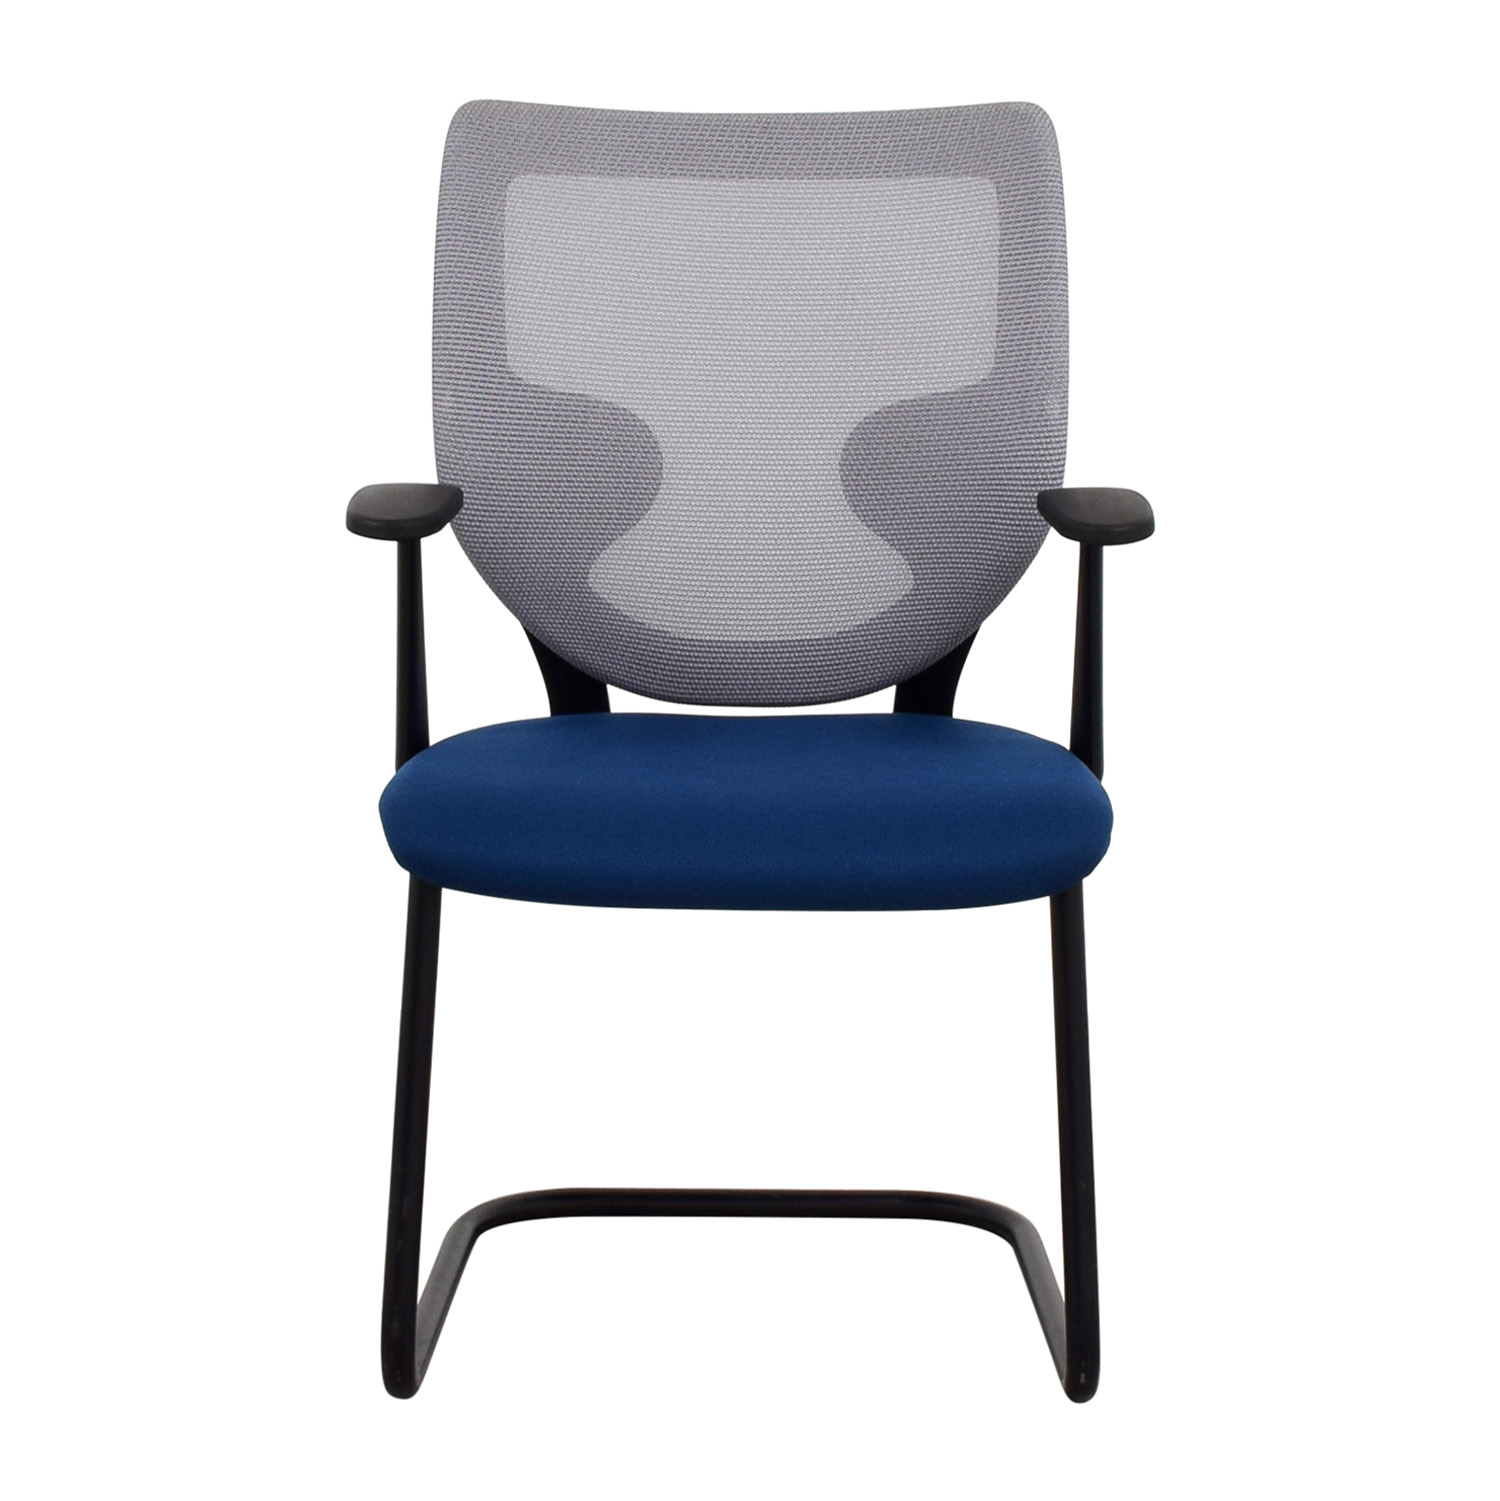 Awe Inspiring 90 Off Keilhauer Keilhauer Blue Mesh Chair Chairs Caraccident5 Cool Chair Designs And Ideas Caraccident5Info